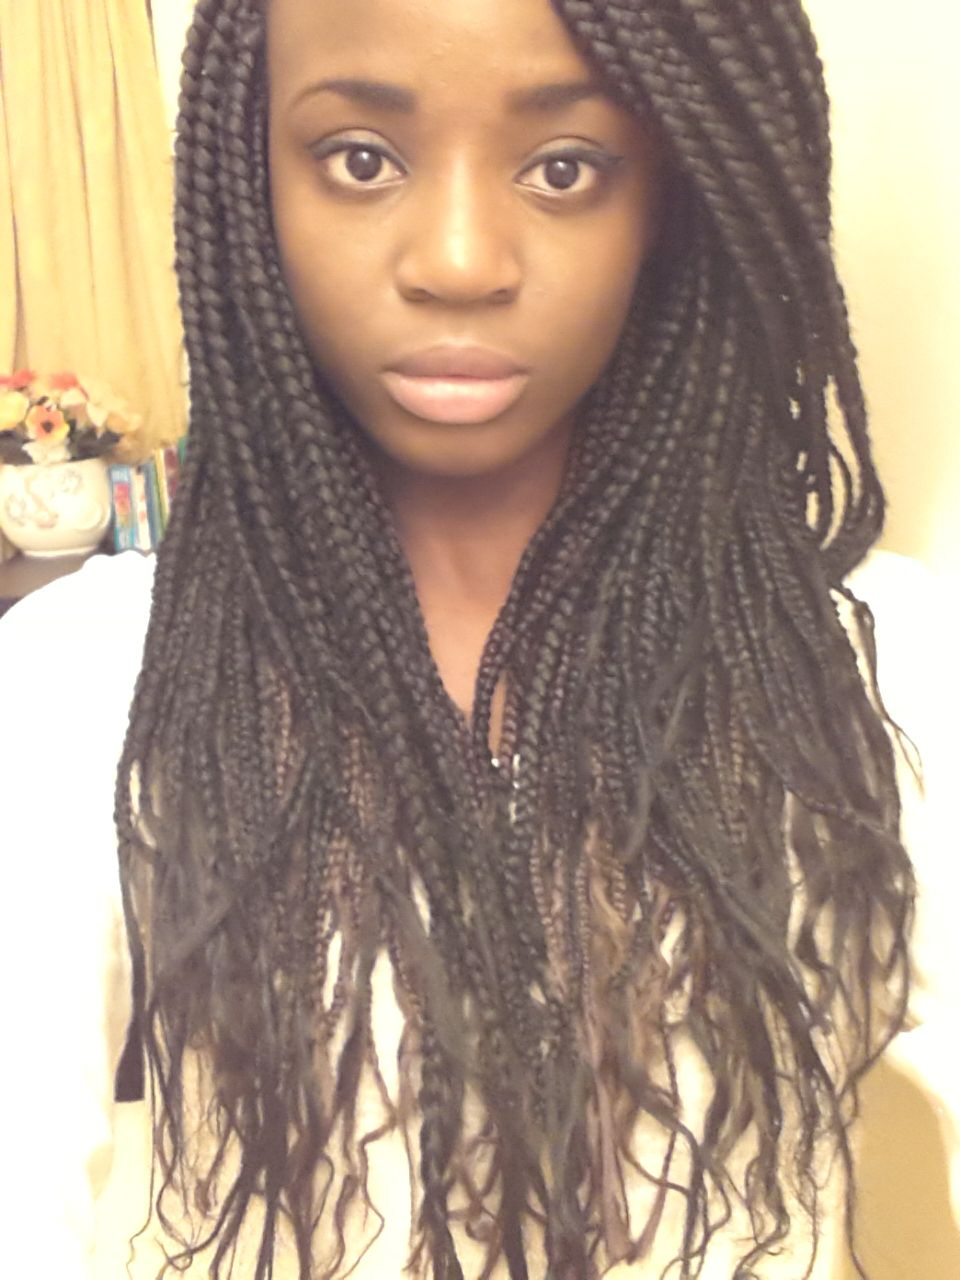 Hairstyles Without Weave Braided Weave Hairstyles For Black Women You Can Braid Your